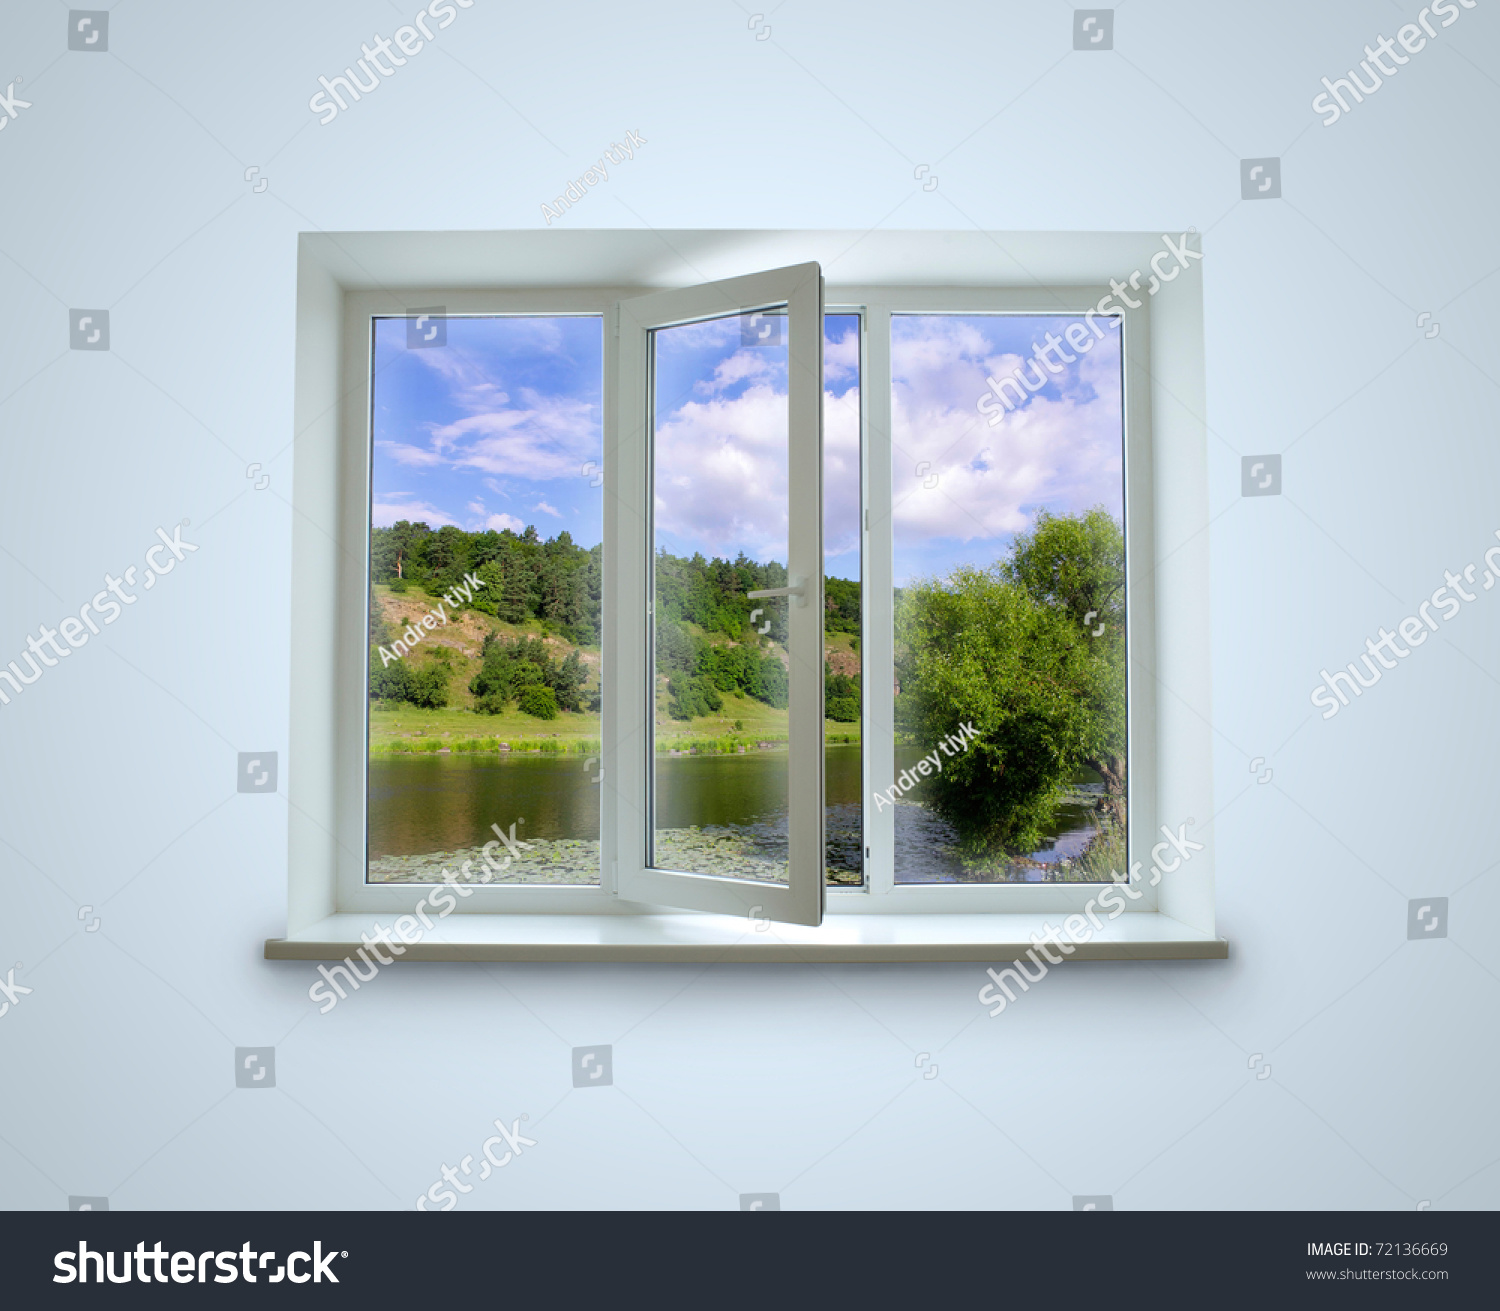 New Closed Plastic Glass Window Frame Stock Photo & Image (Royalty ...